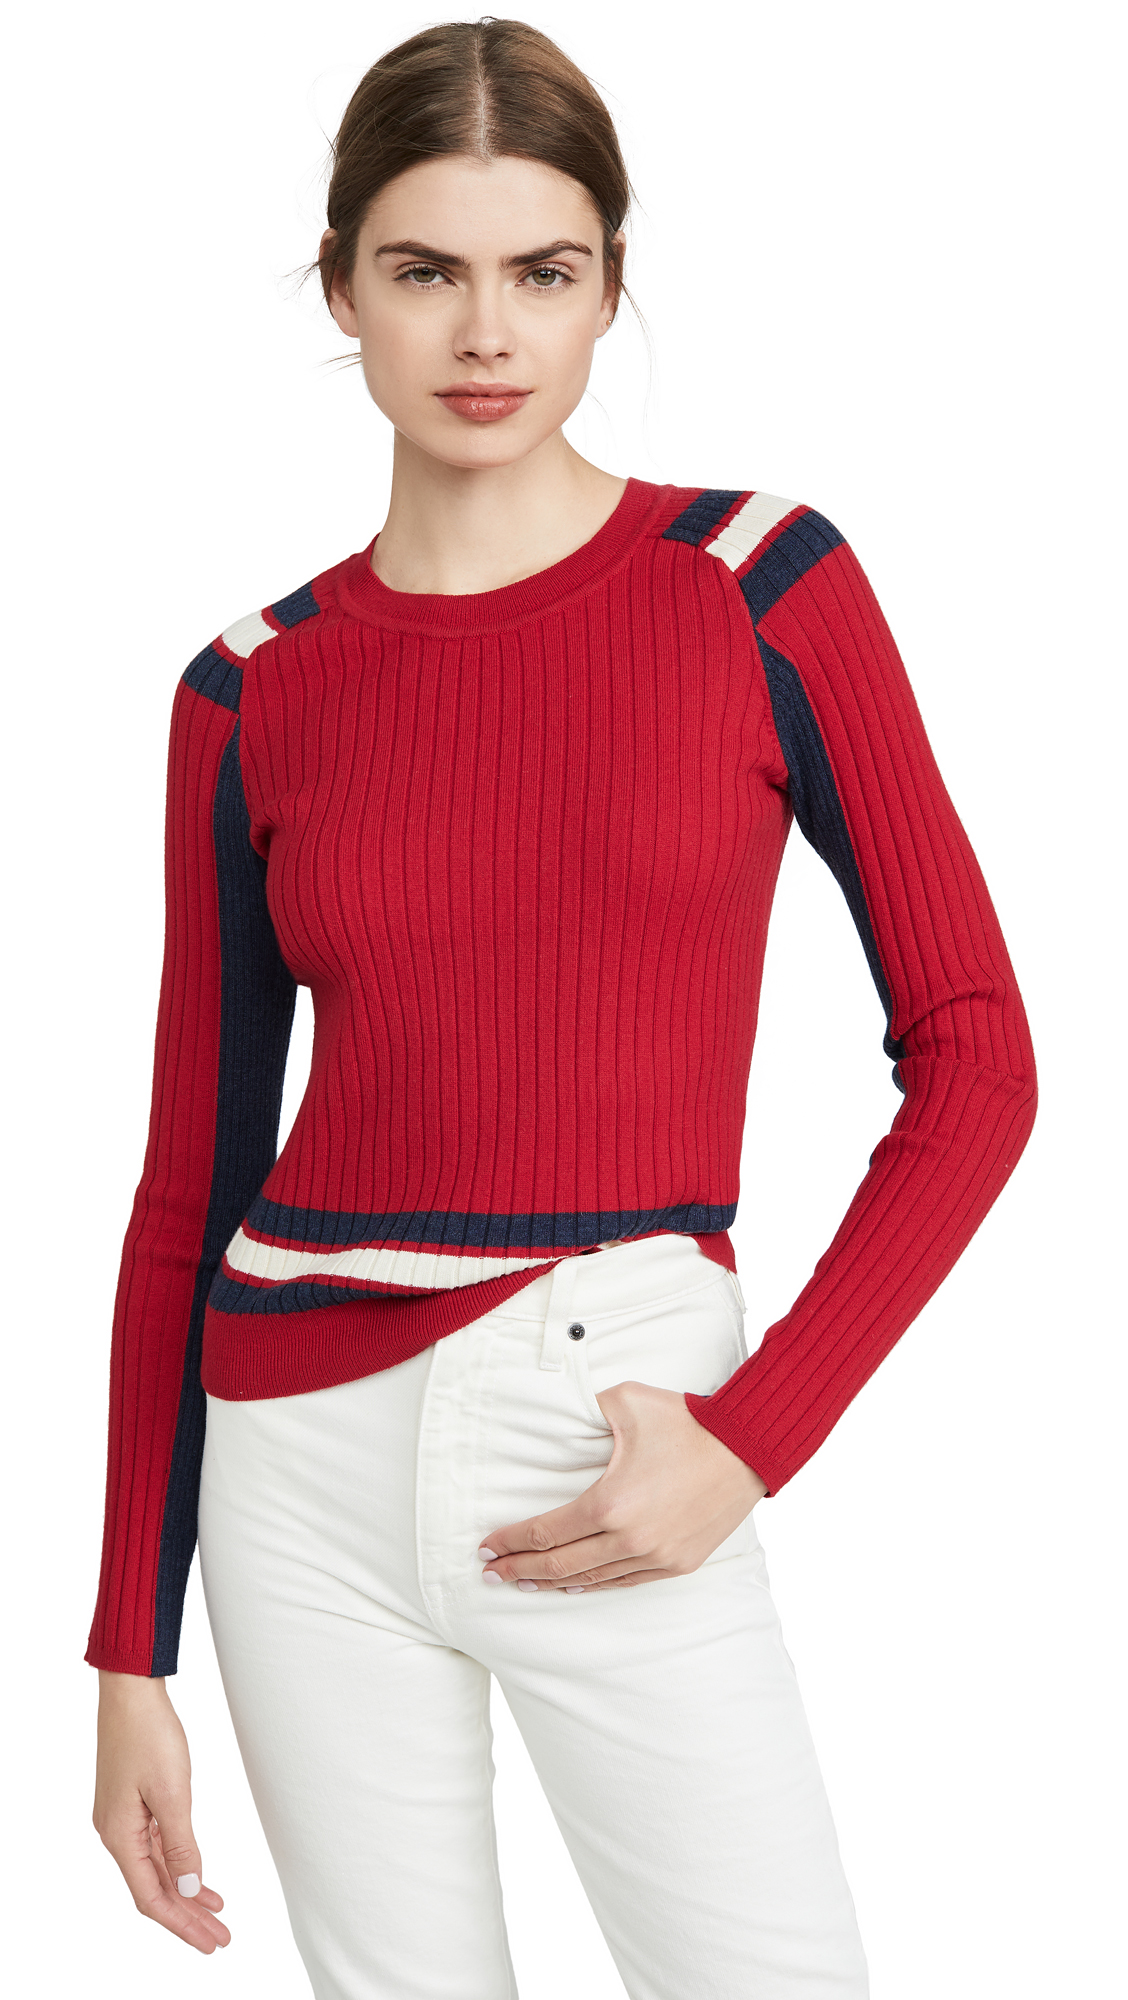 Buy Rag & Bone/JEAN online - photo of Rag & Bone/JEAN Julee Crew Sweater